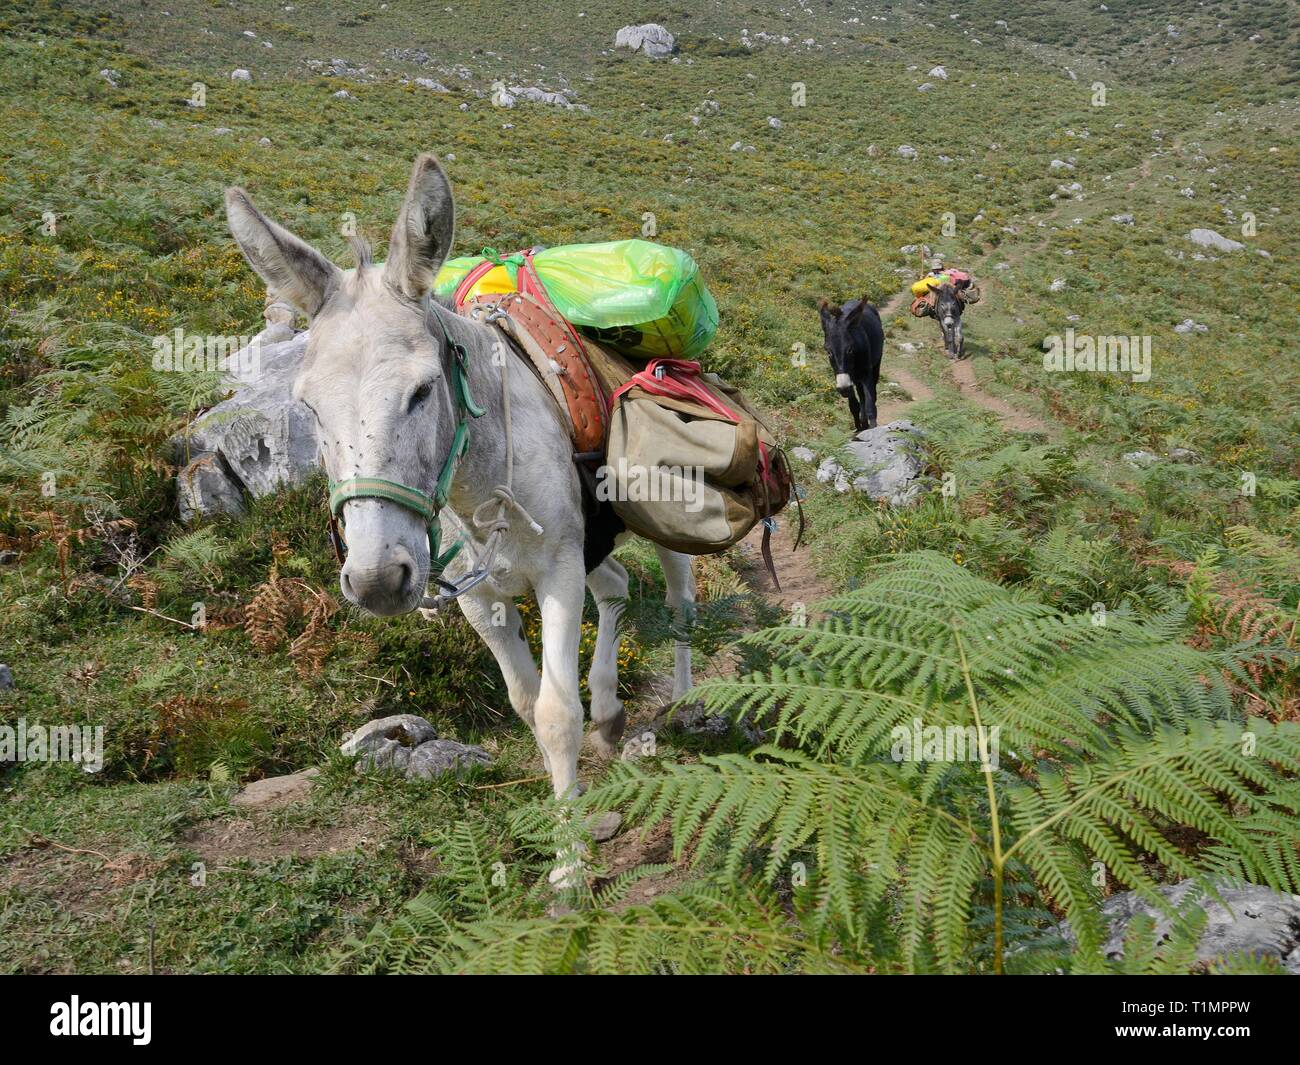 Pack mules carrying loads up a mountain path above the Lakes of Covadonga, to resupply a mountain refuge hut, Asturias, Spain, August. - Stock Image